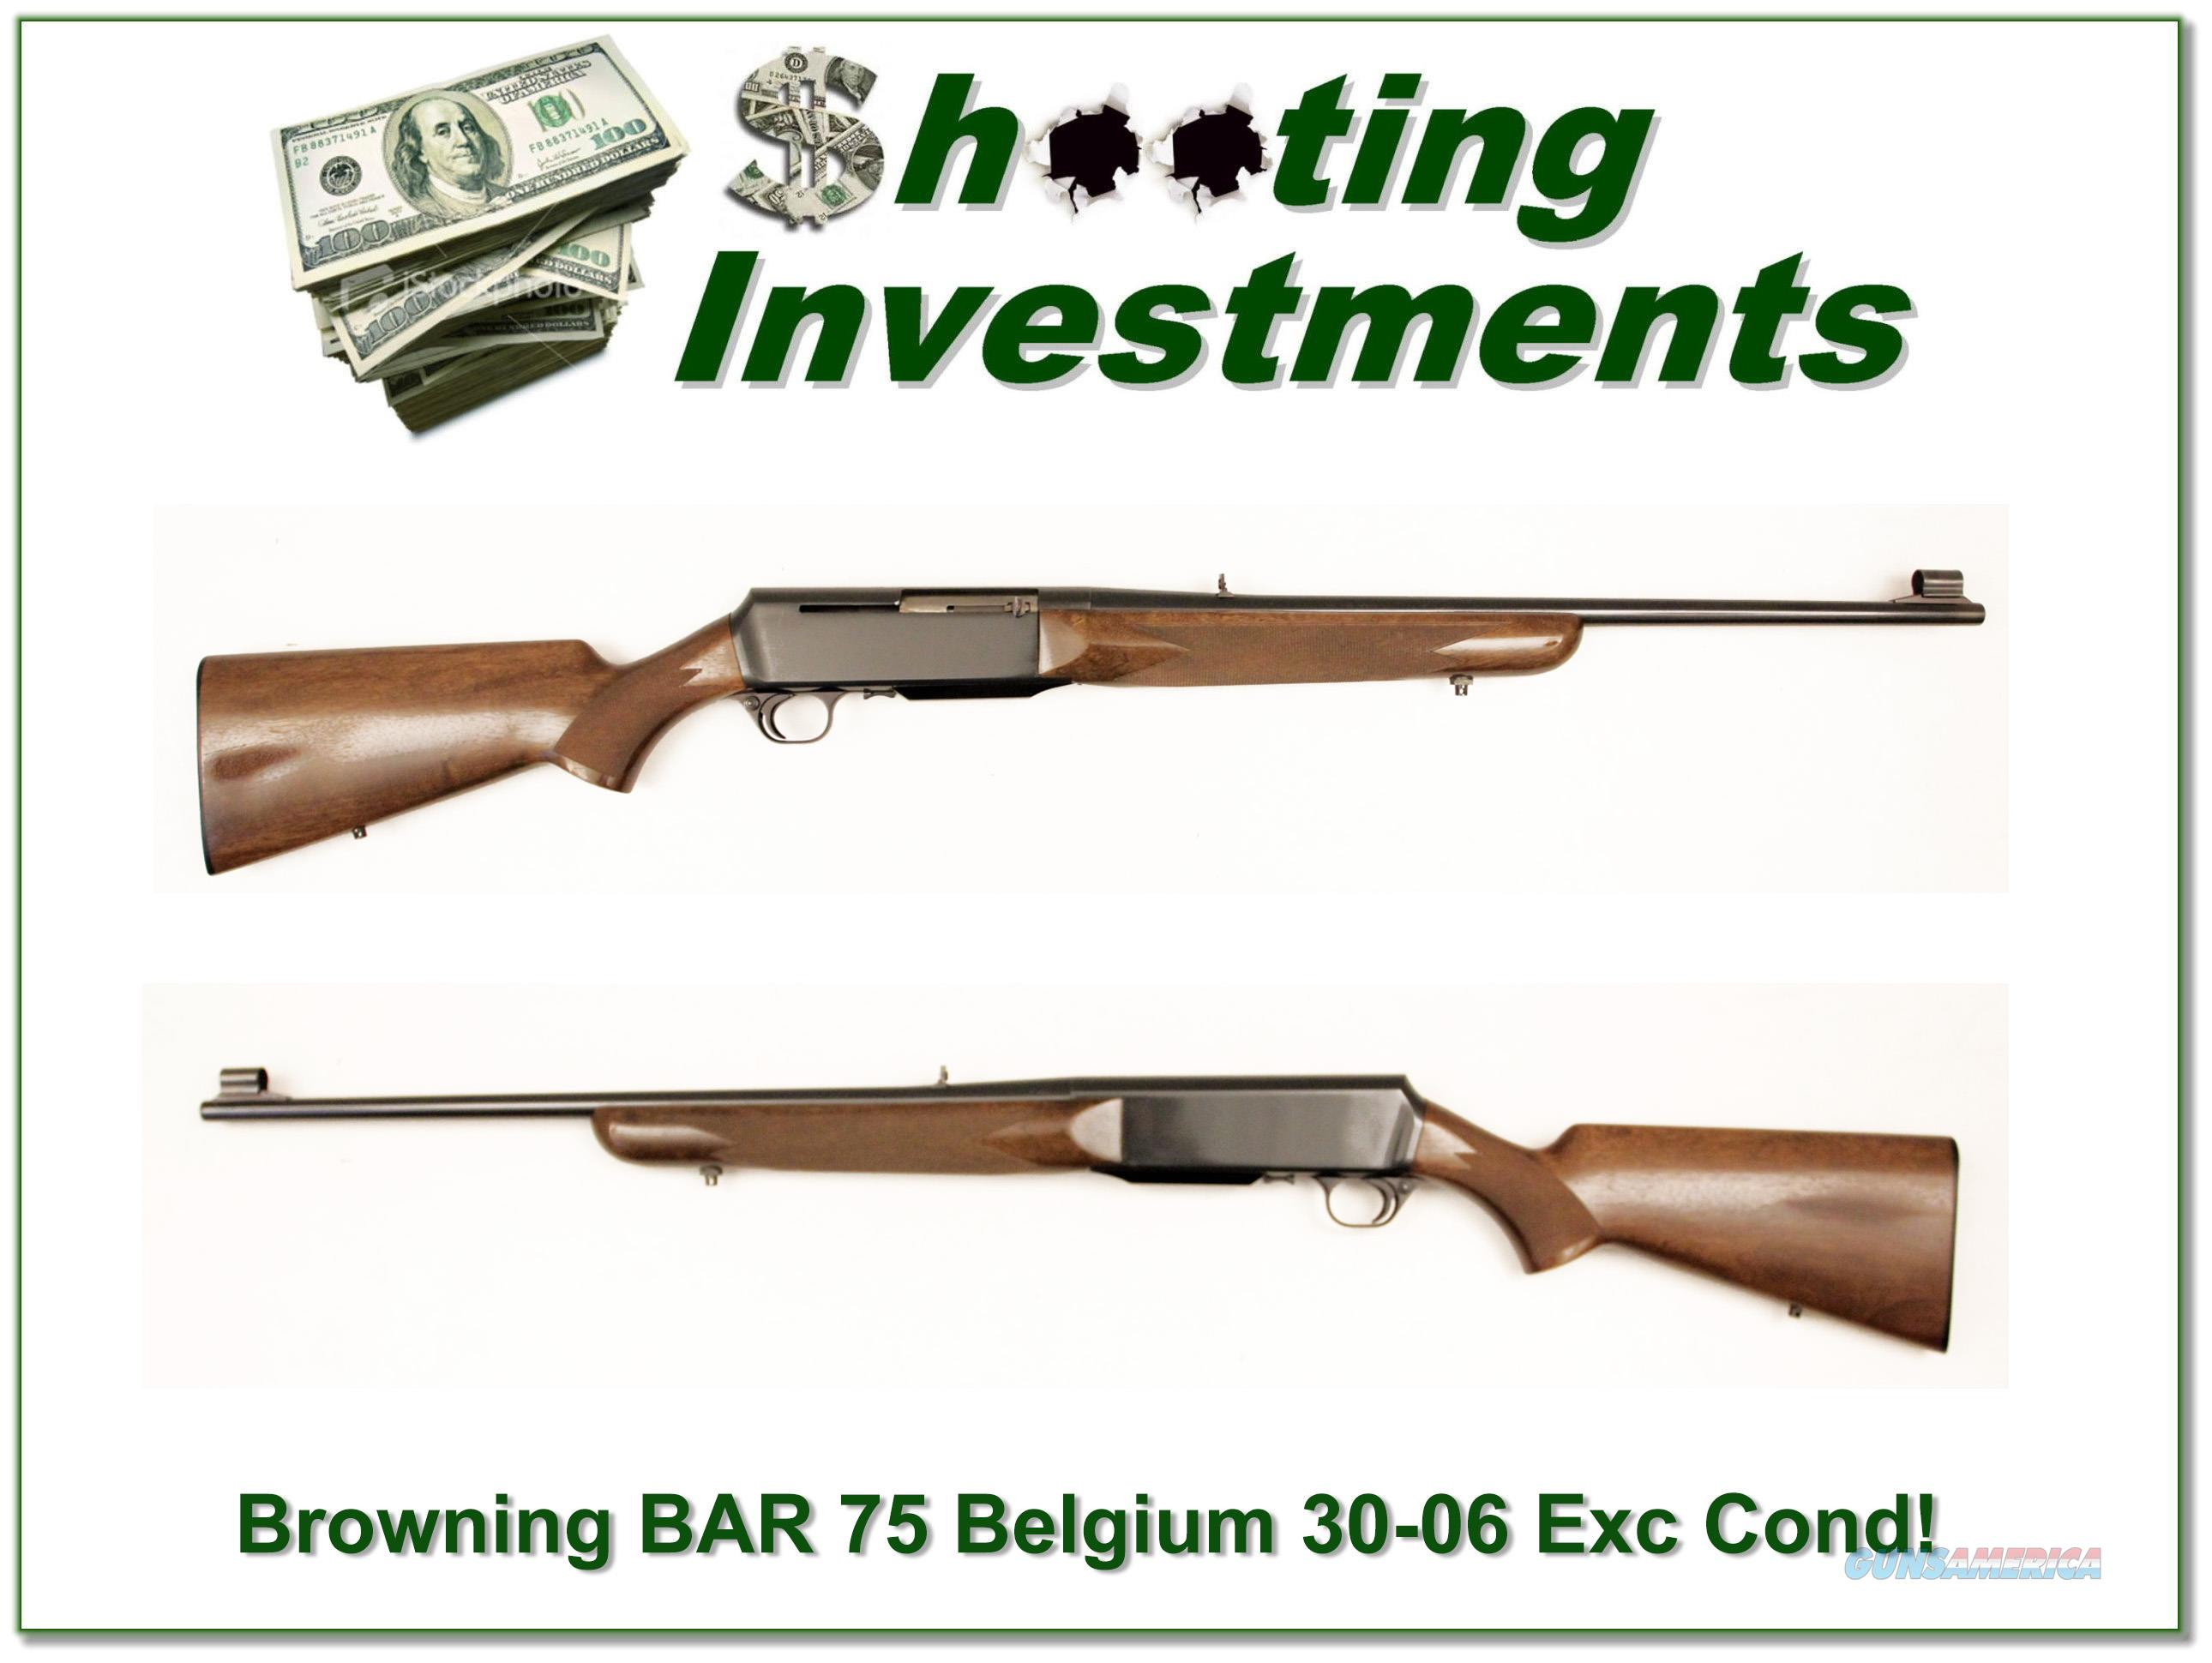 Browning BAR full 75 Belgium 30-06 Exc Cond!  Guns > Rifles > Browning Rifles > Semi Auto > Hunting